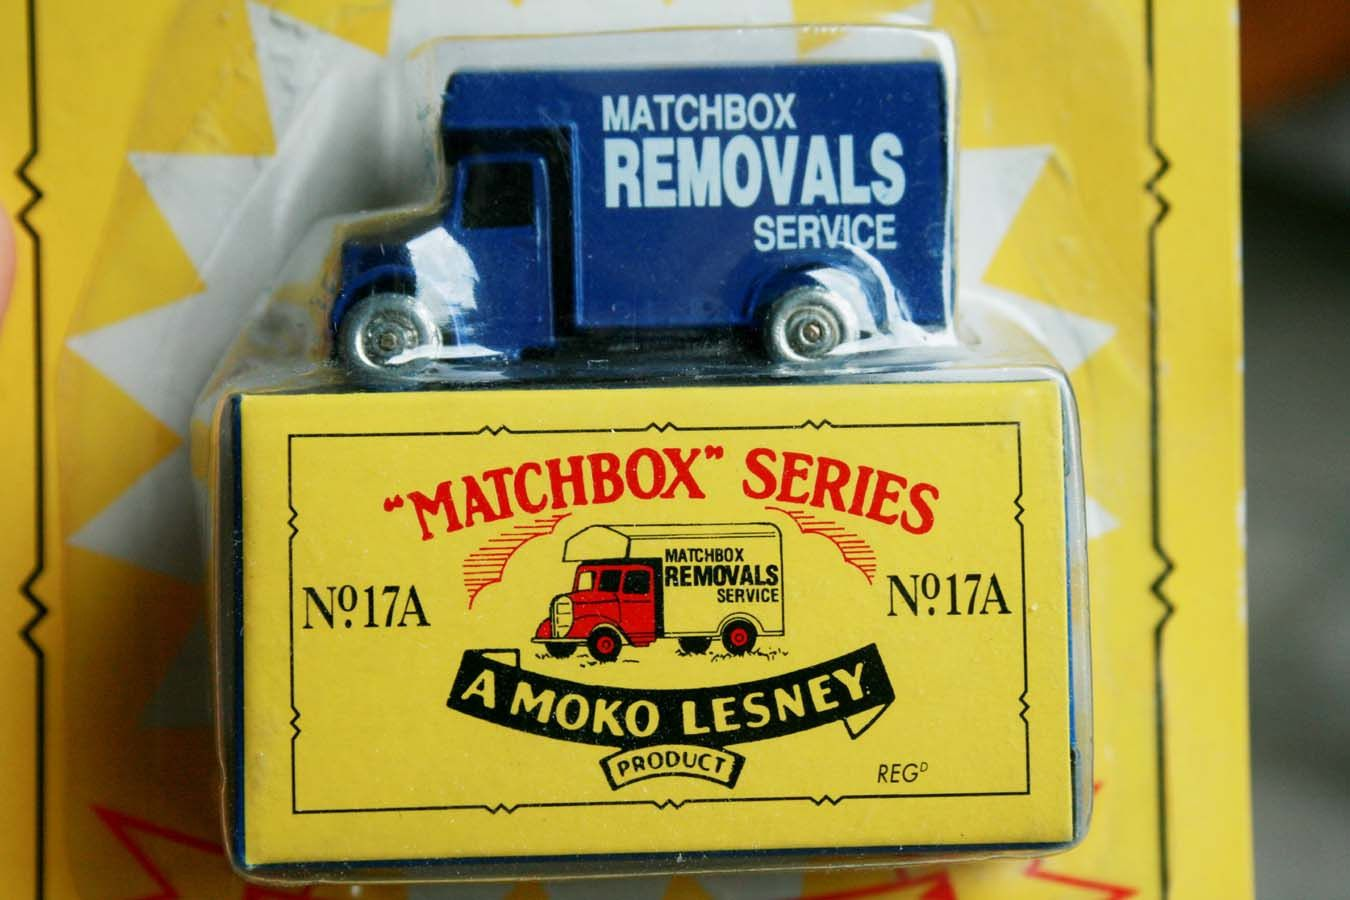 Vintage Matchbox Car, Removals Service Vehicle